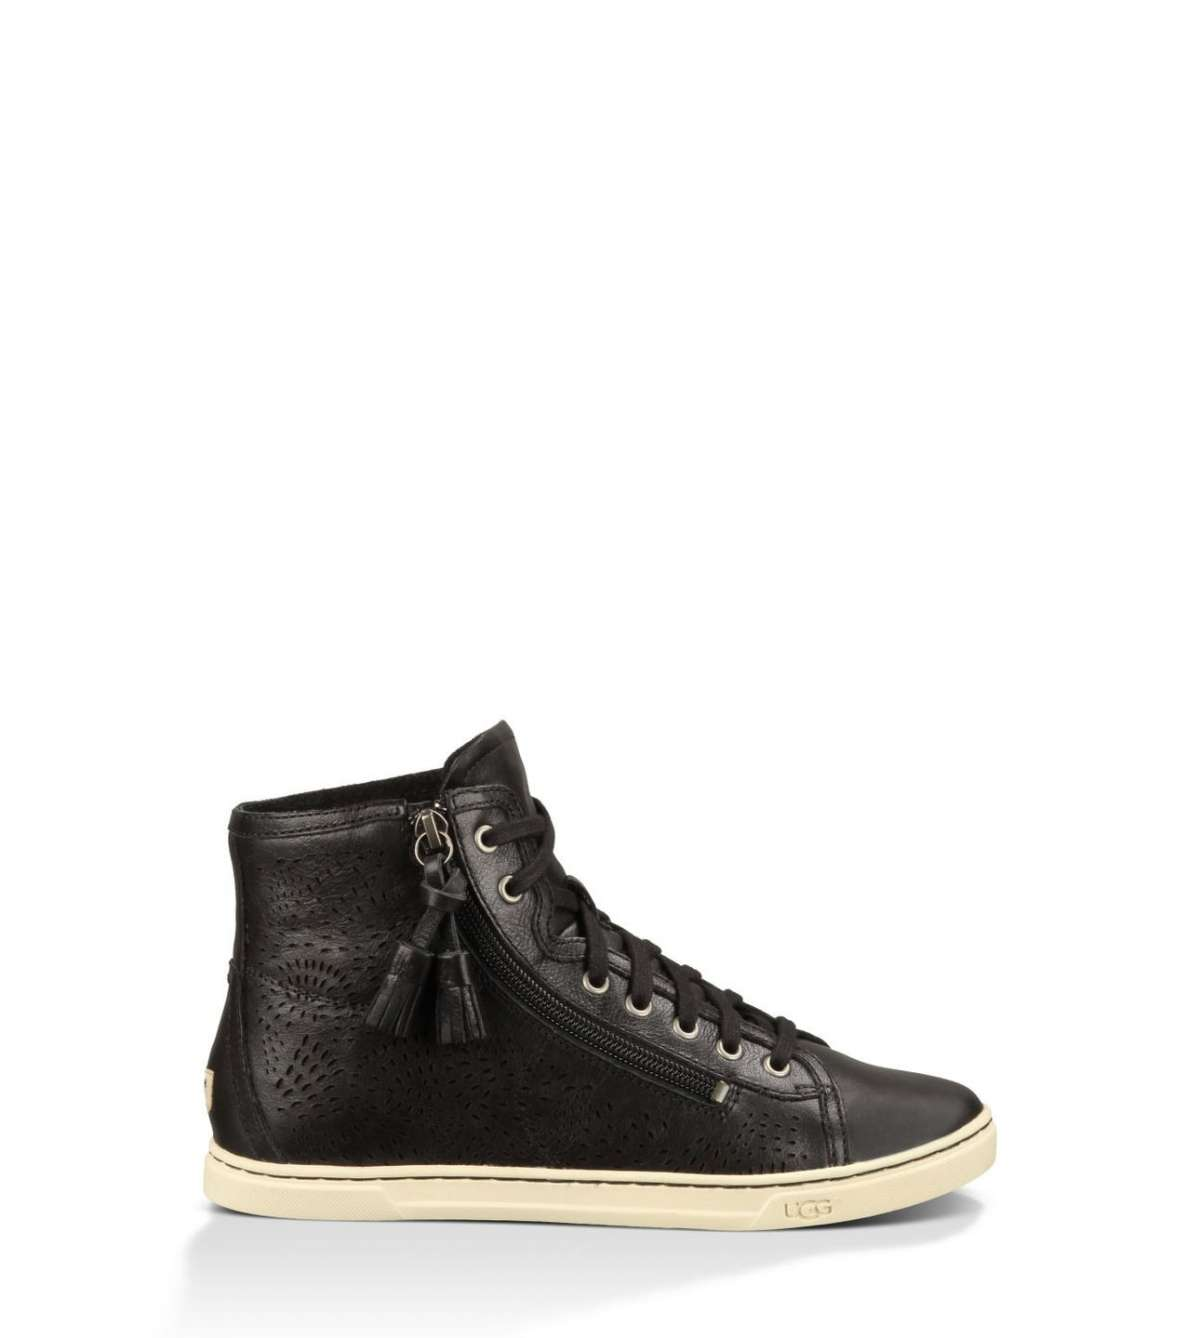 Sneakers nere Ugg